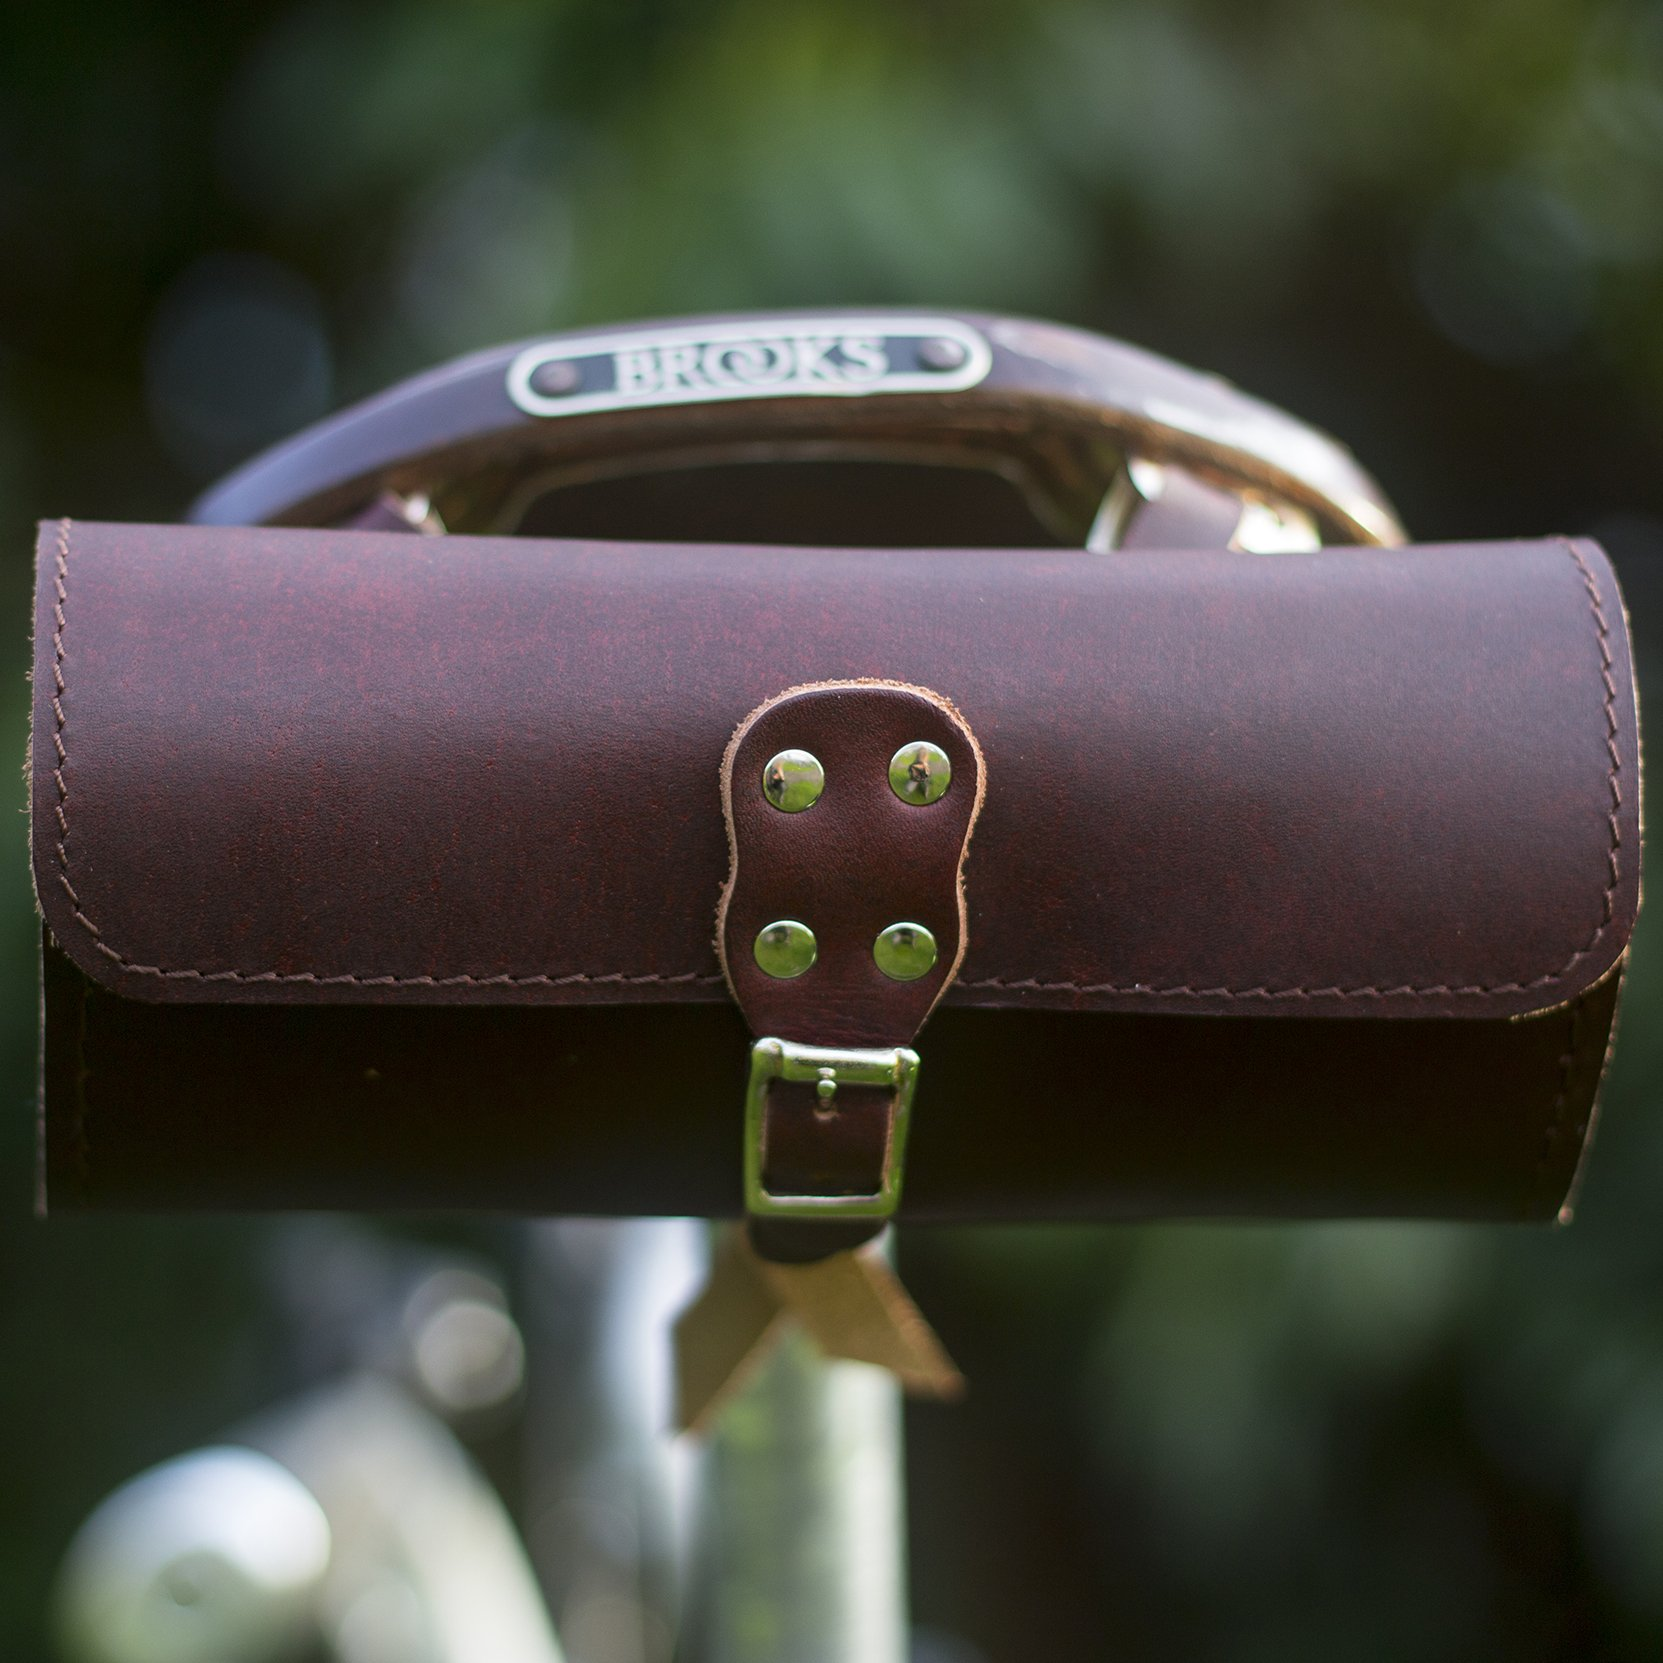 Classic Genuine Leather Saddle Bag Handlebar Frame Bag in CHERRY BROWN UK MADE Tracked shipping